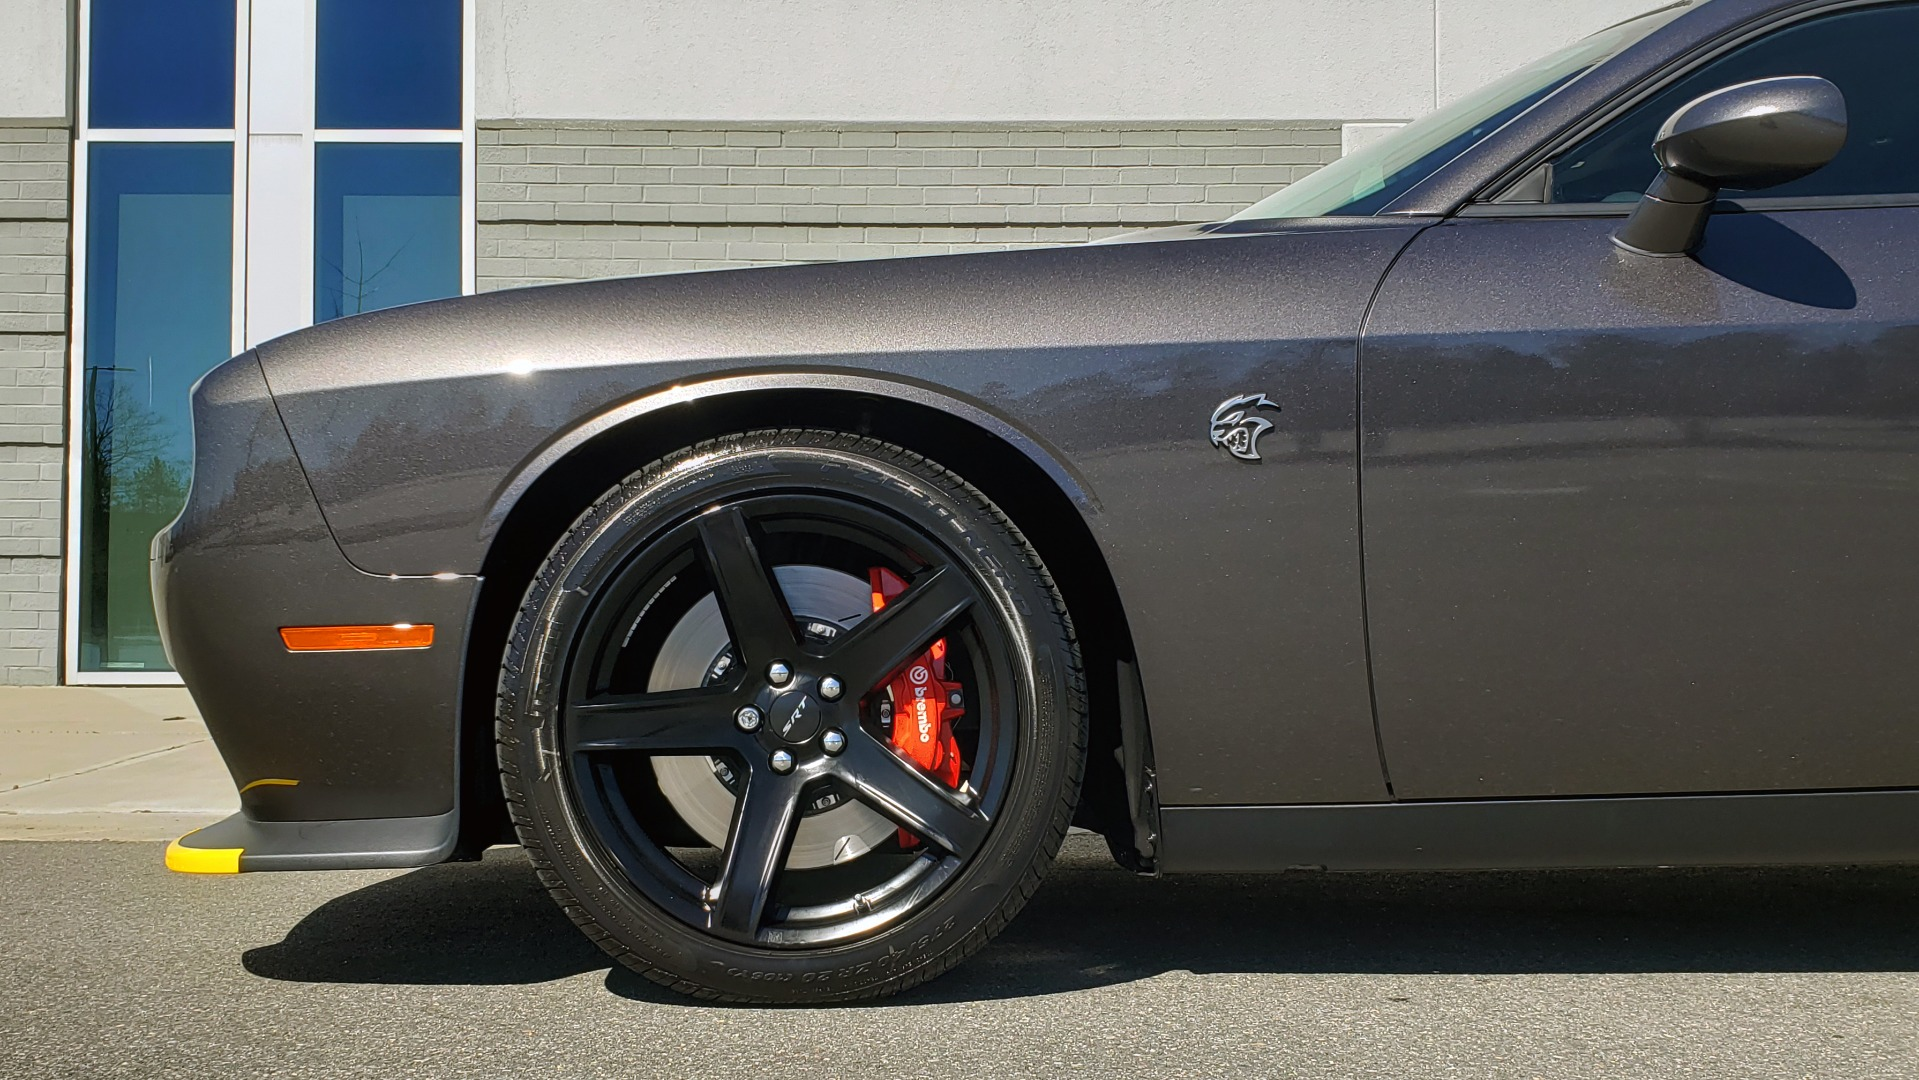 Used 2020 Dodge CHALLENGER SRT HELLCAT (717HP) / NAV / AUTO / CLOTH / REARVIEW / LOW MILES for sale $64,999 at Formula Imports in Charlotte NC 28227 77